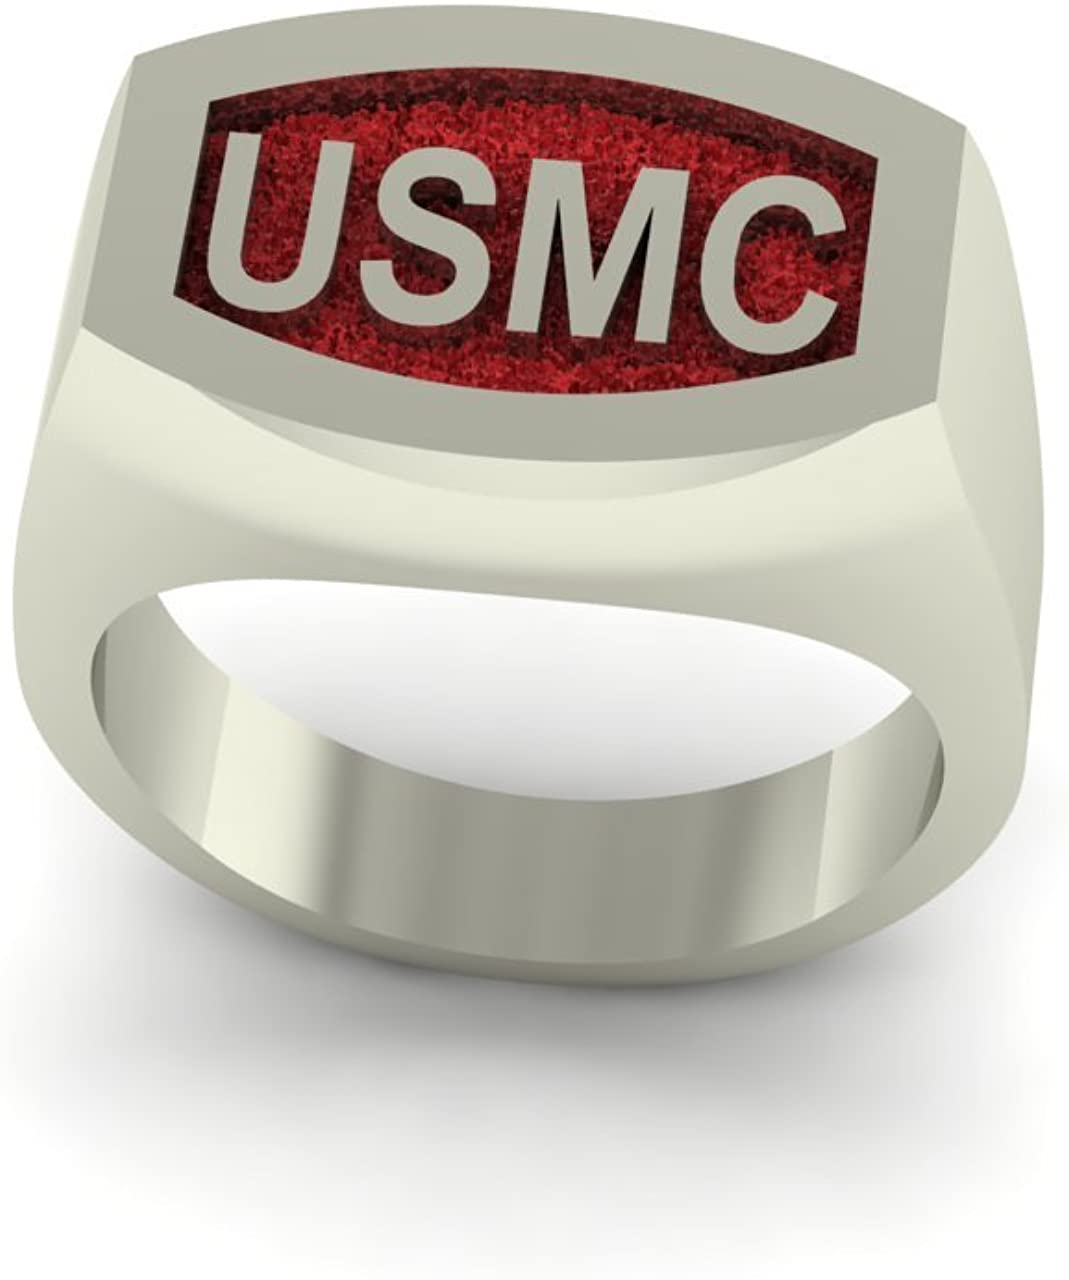 Continuum Sterling Silver USMC Bold Signet Ring with Red Backaground